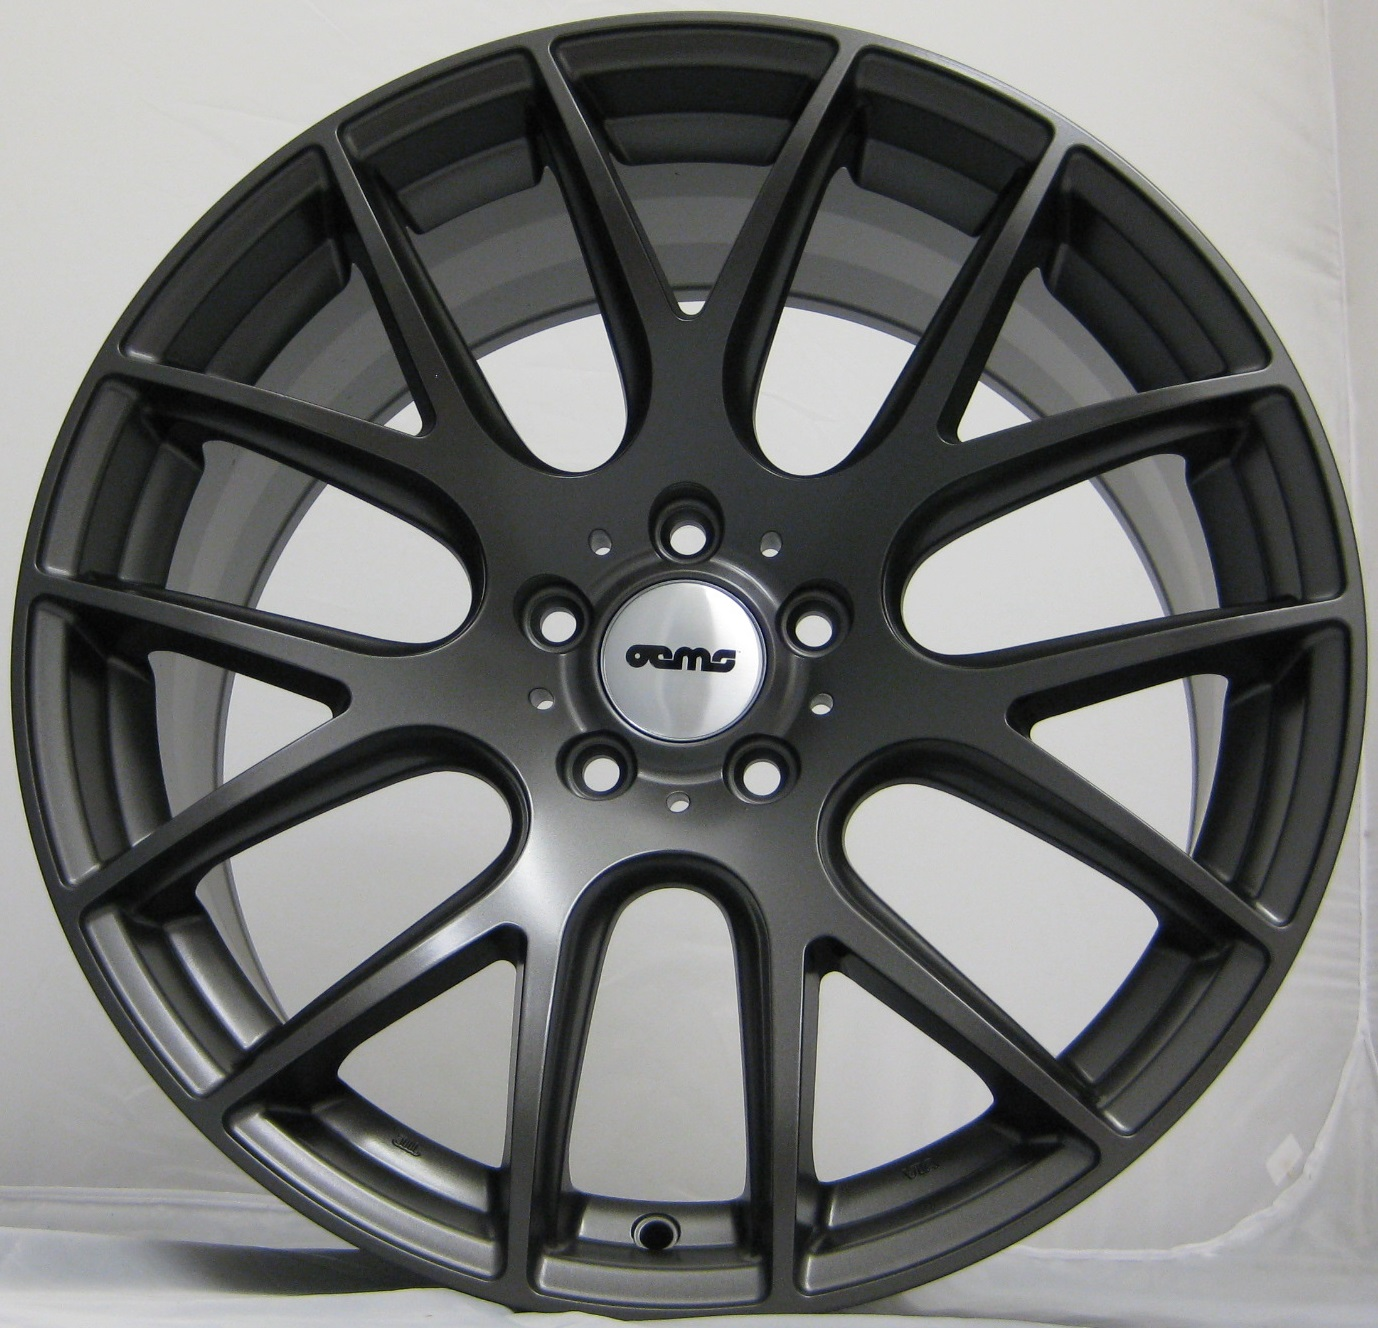 "NEW 18"" OEMS 111 ALLOY WHEELS IN GLOSS GUNMETAL WITH WIDER 9.5"" REARS"